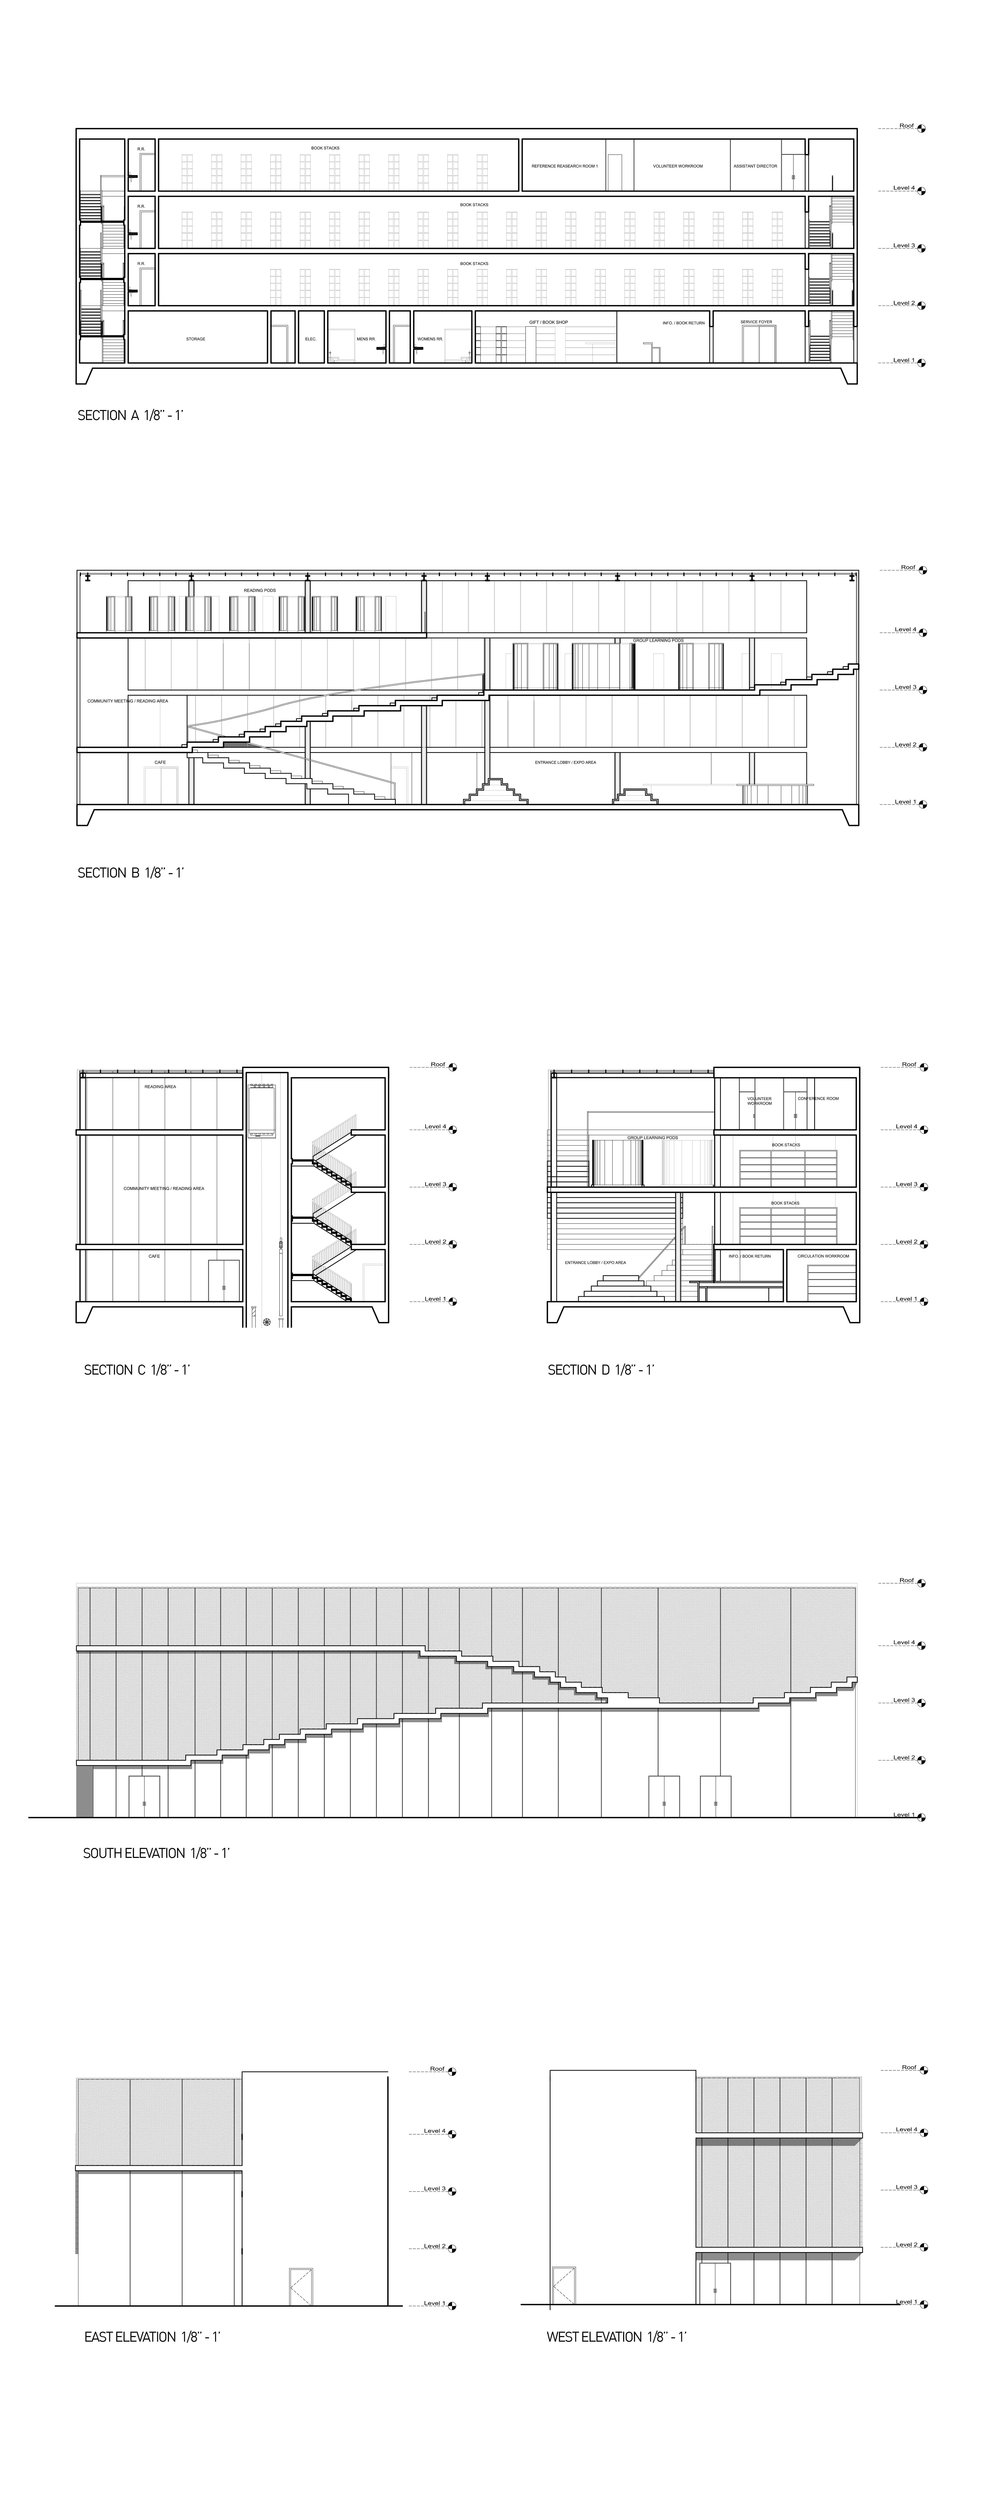 sheet-3-sections-min.jpg